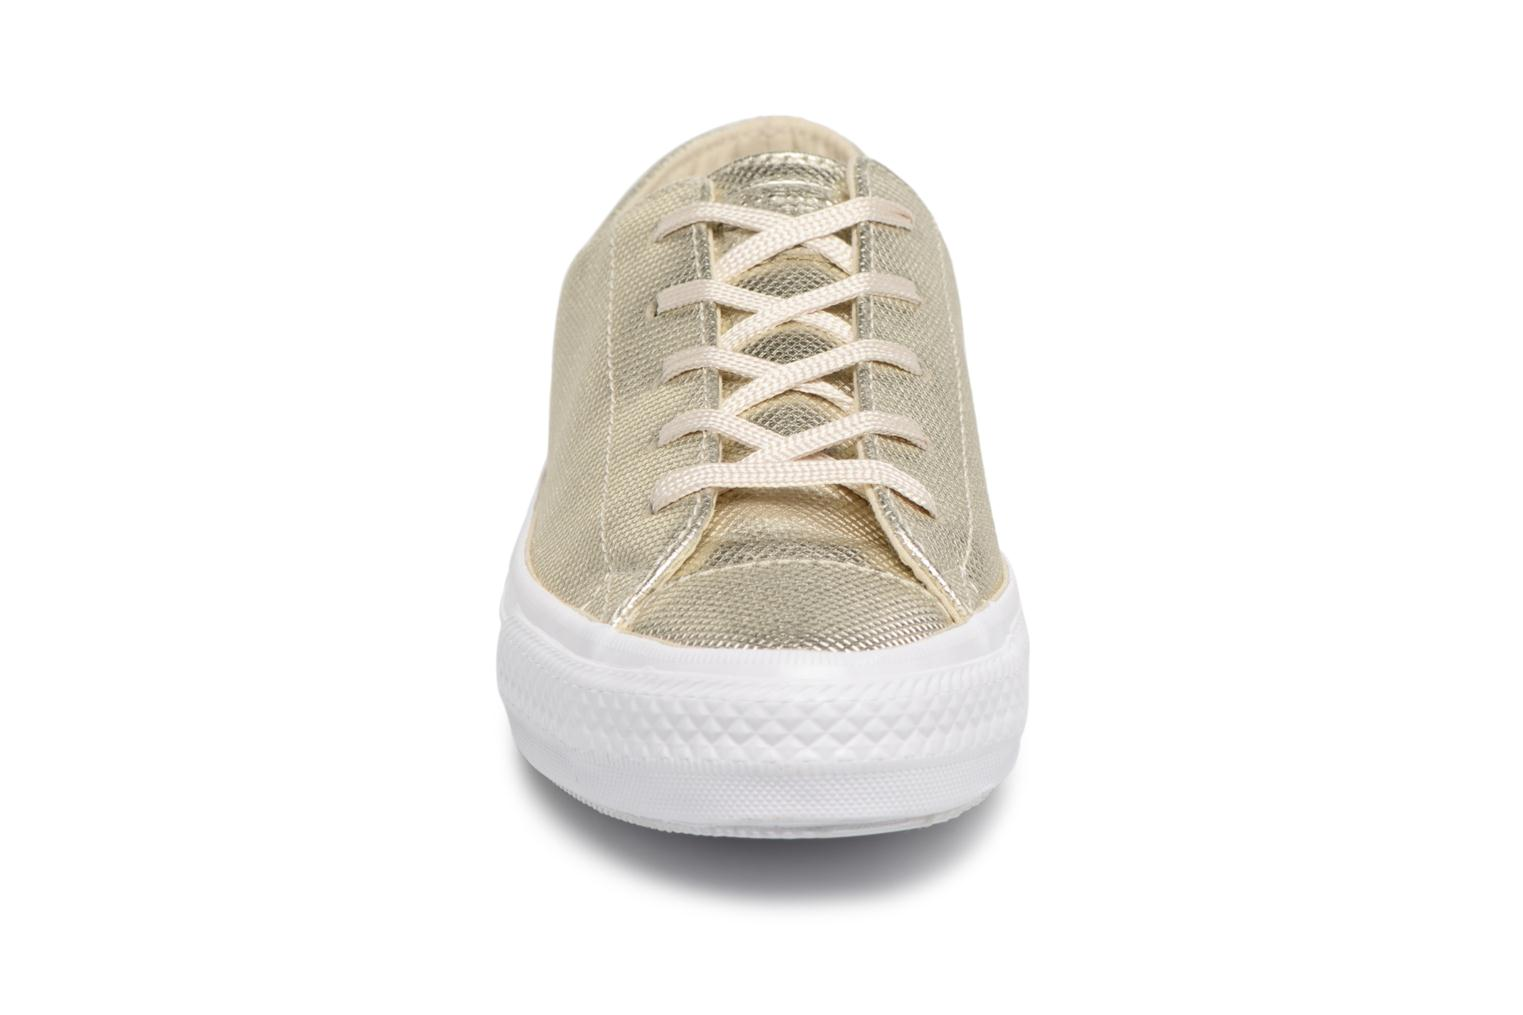 Sneaker Converse Ctas Gemma Diamond Foil Leather Ox gold/bronze schuhe getragen